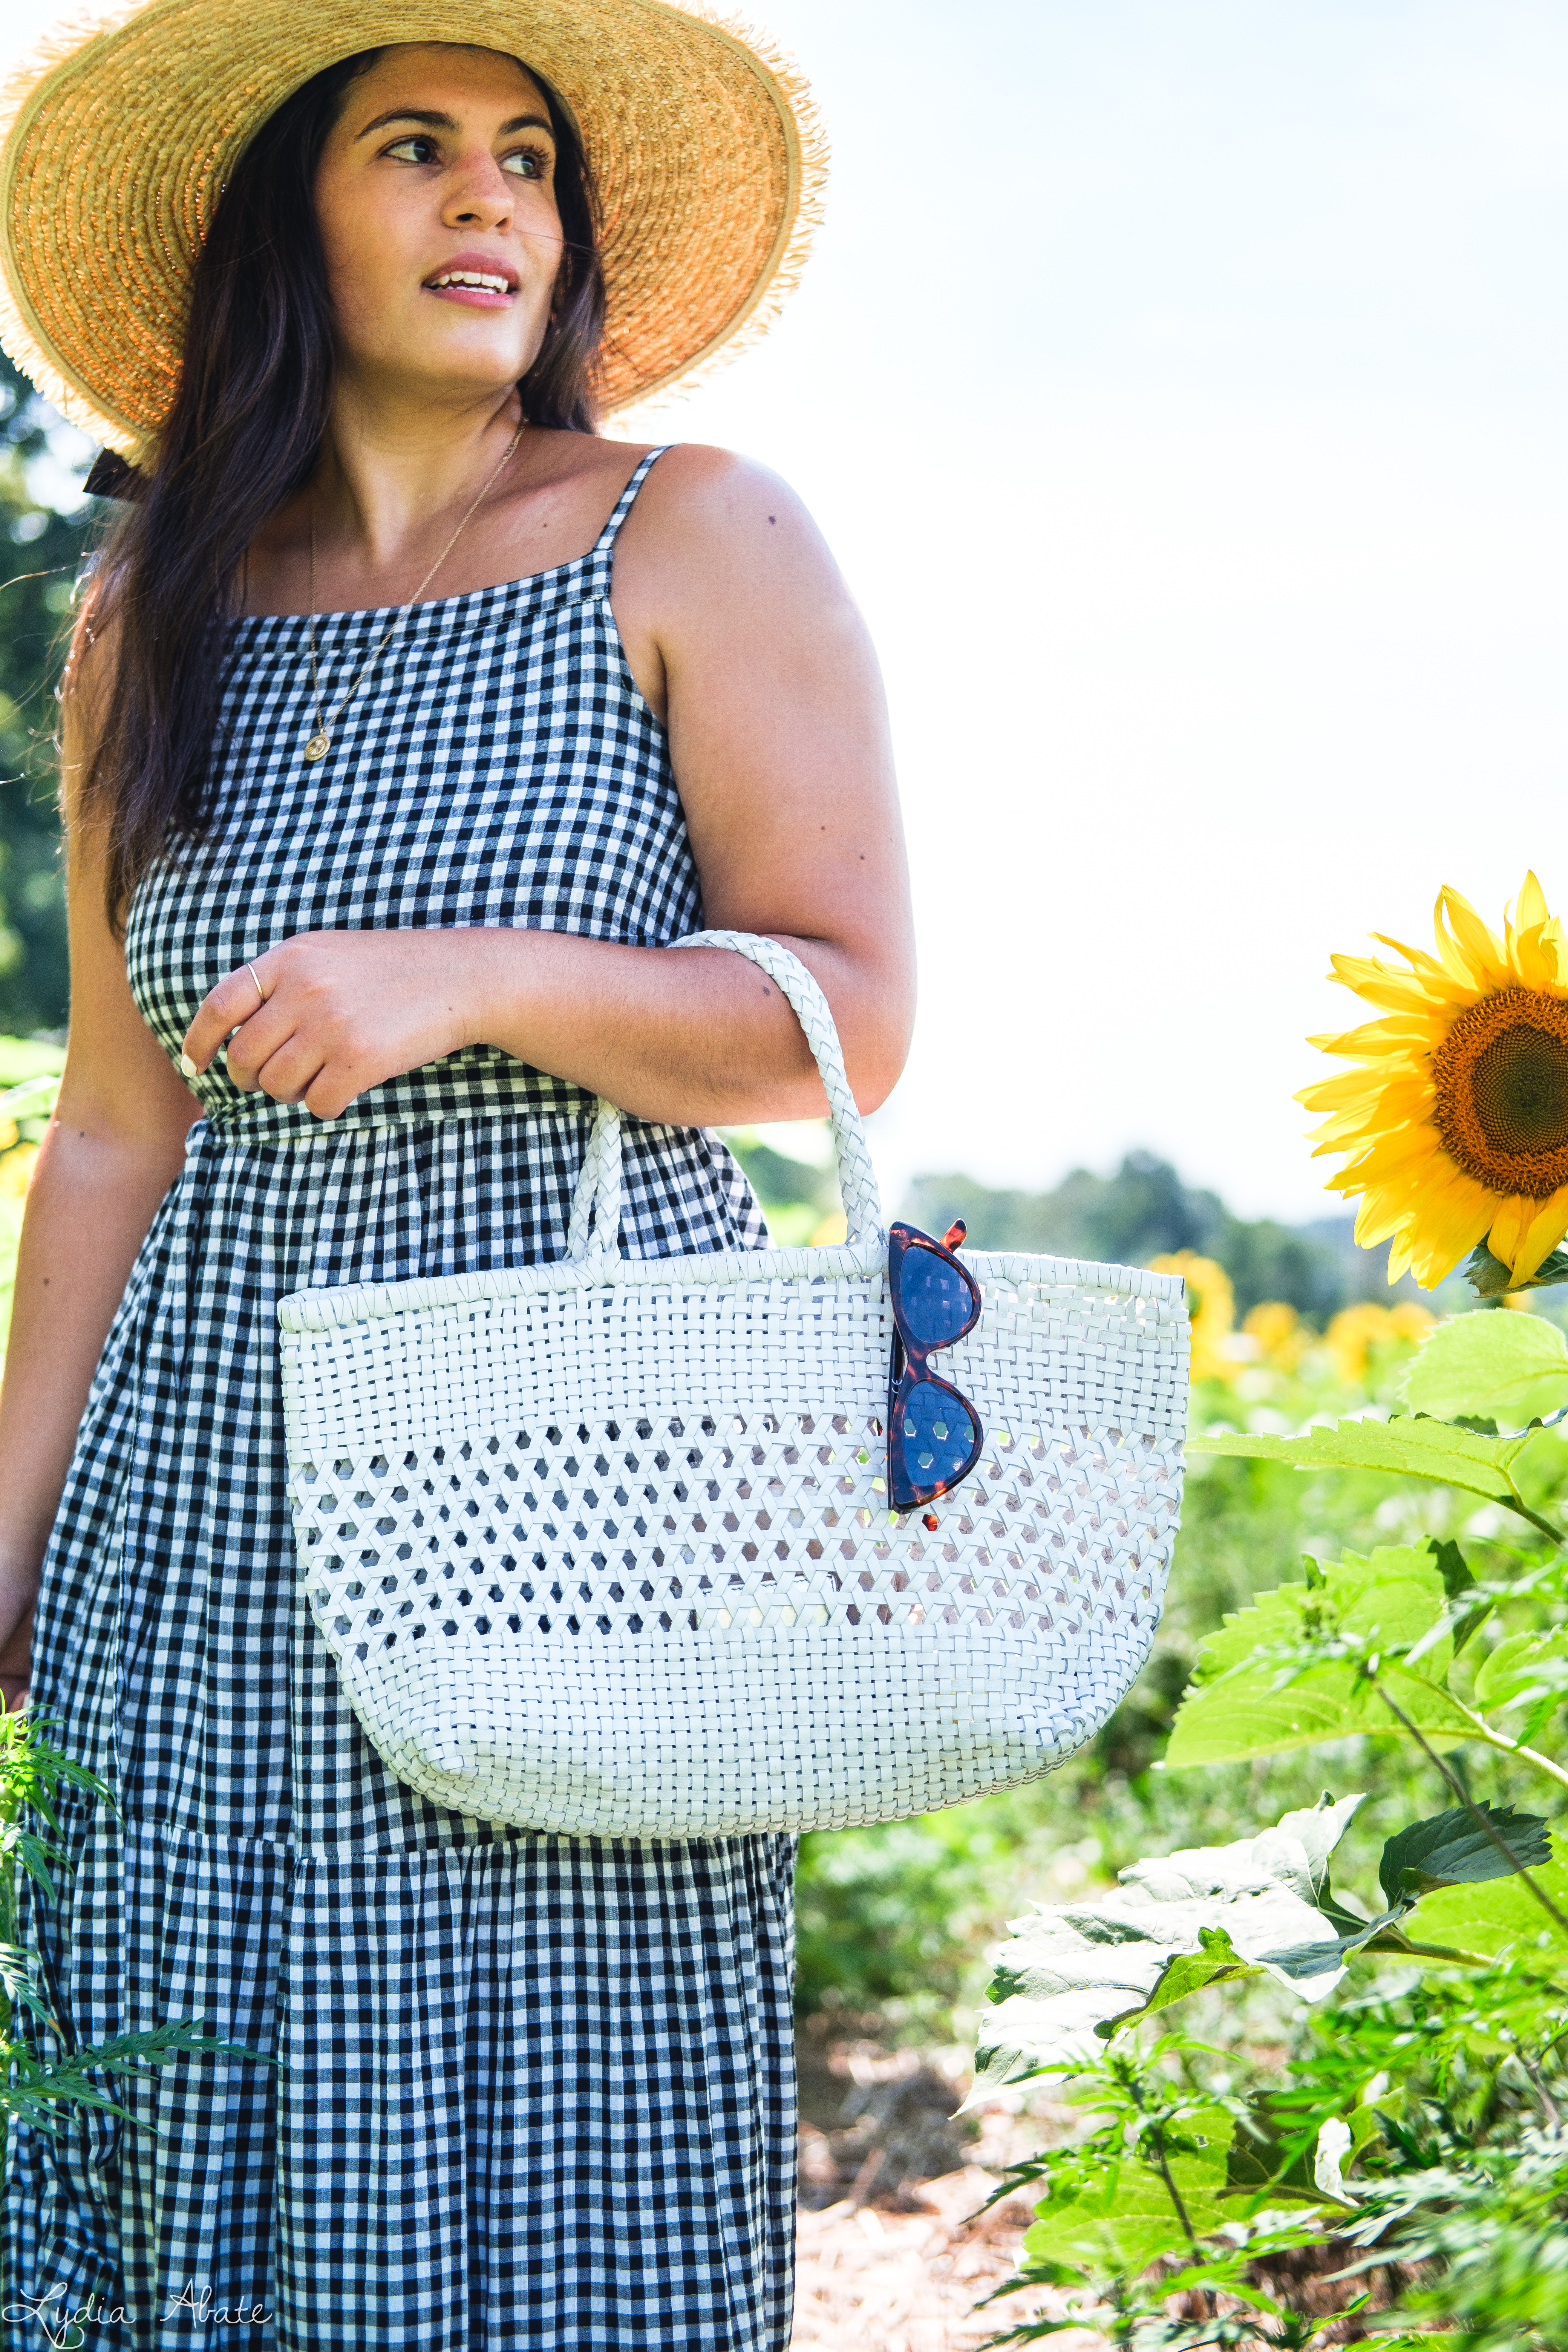 gingham maxi dress, straw hat, white caned leather tote bag, sunflowers-16.jpg